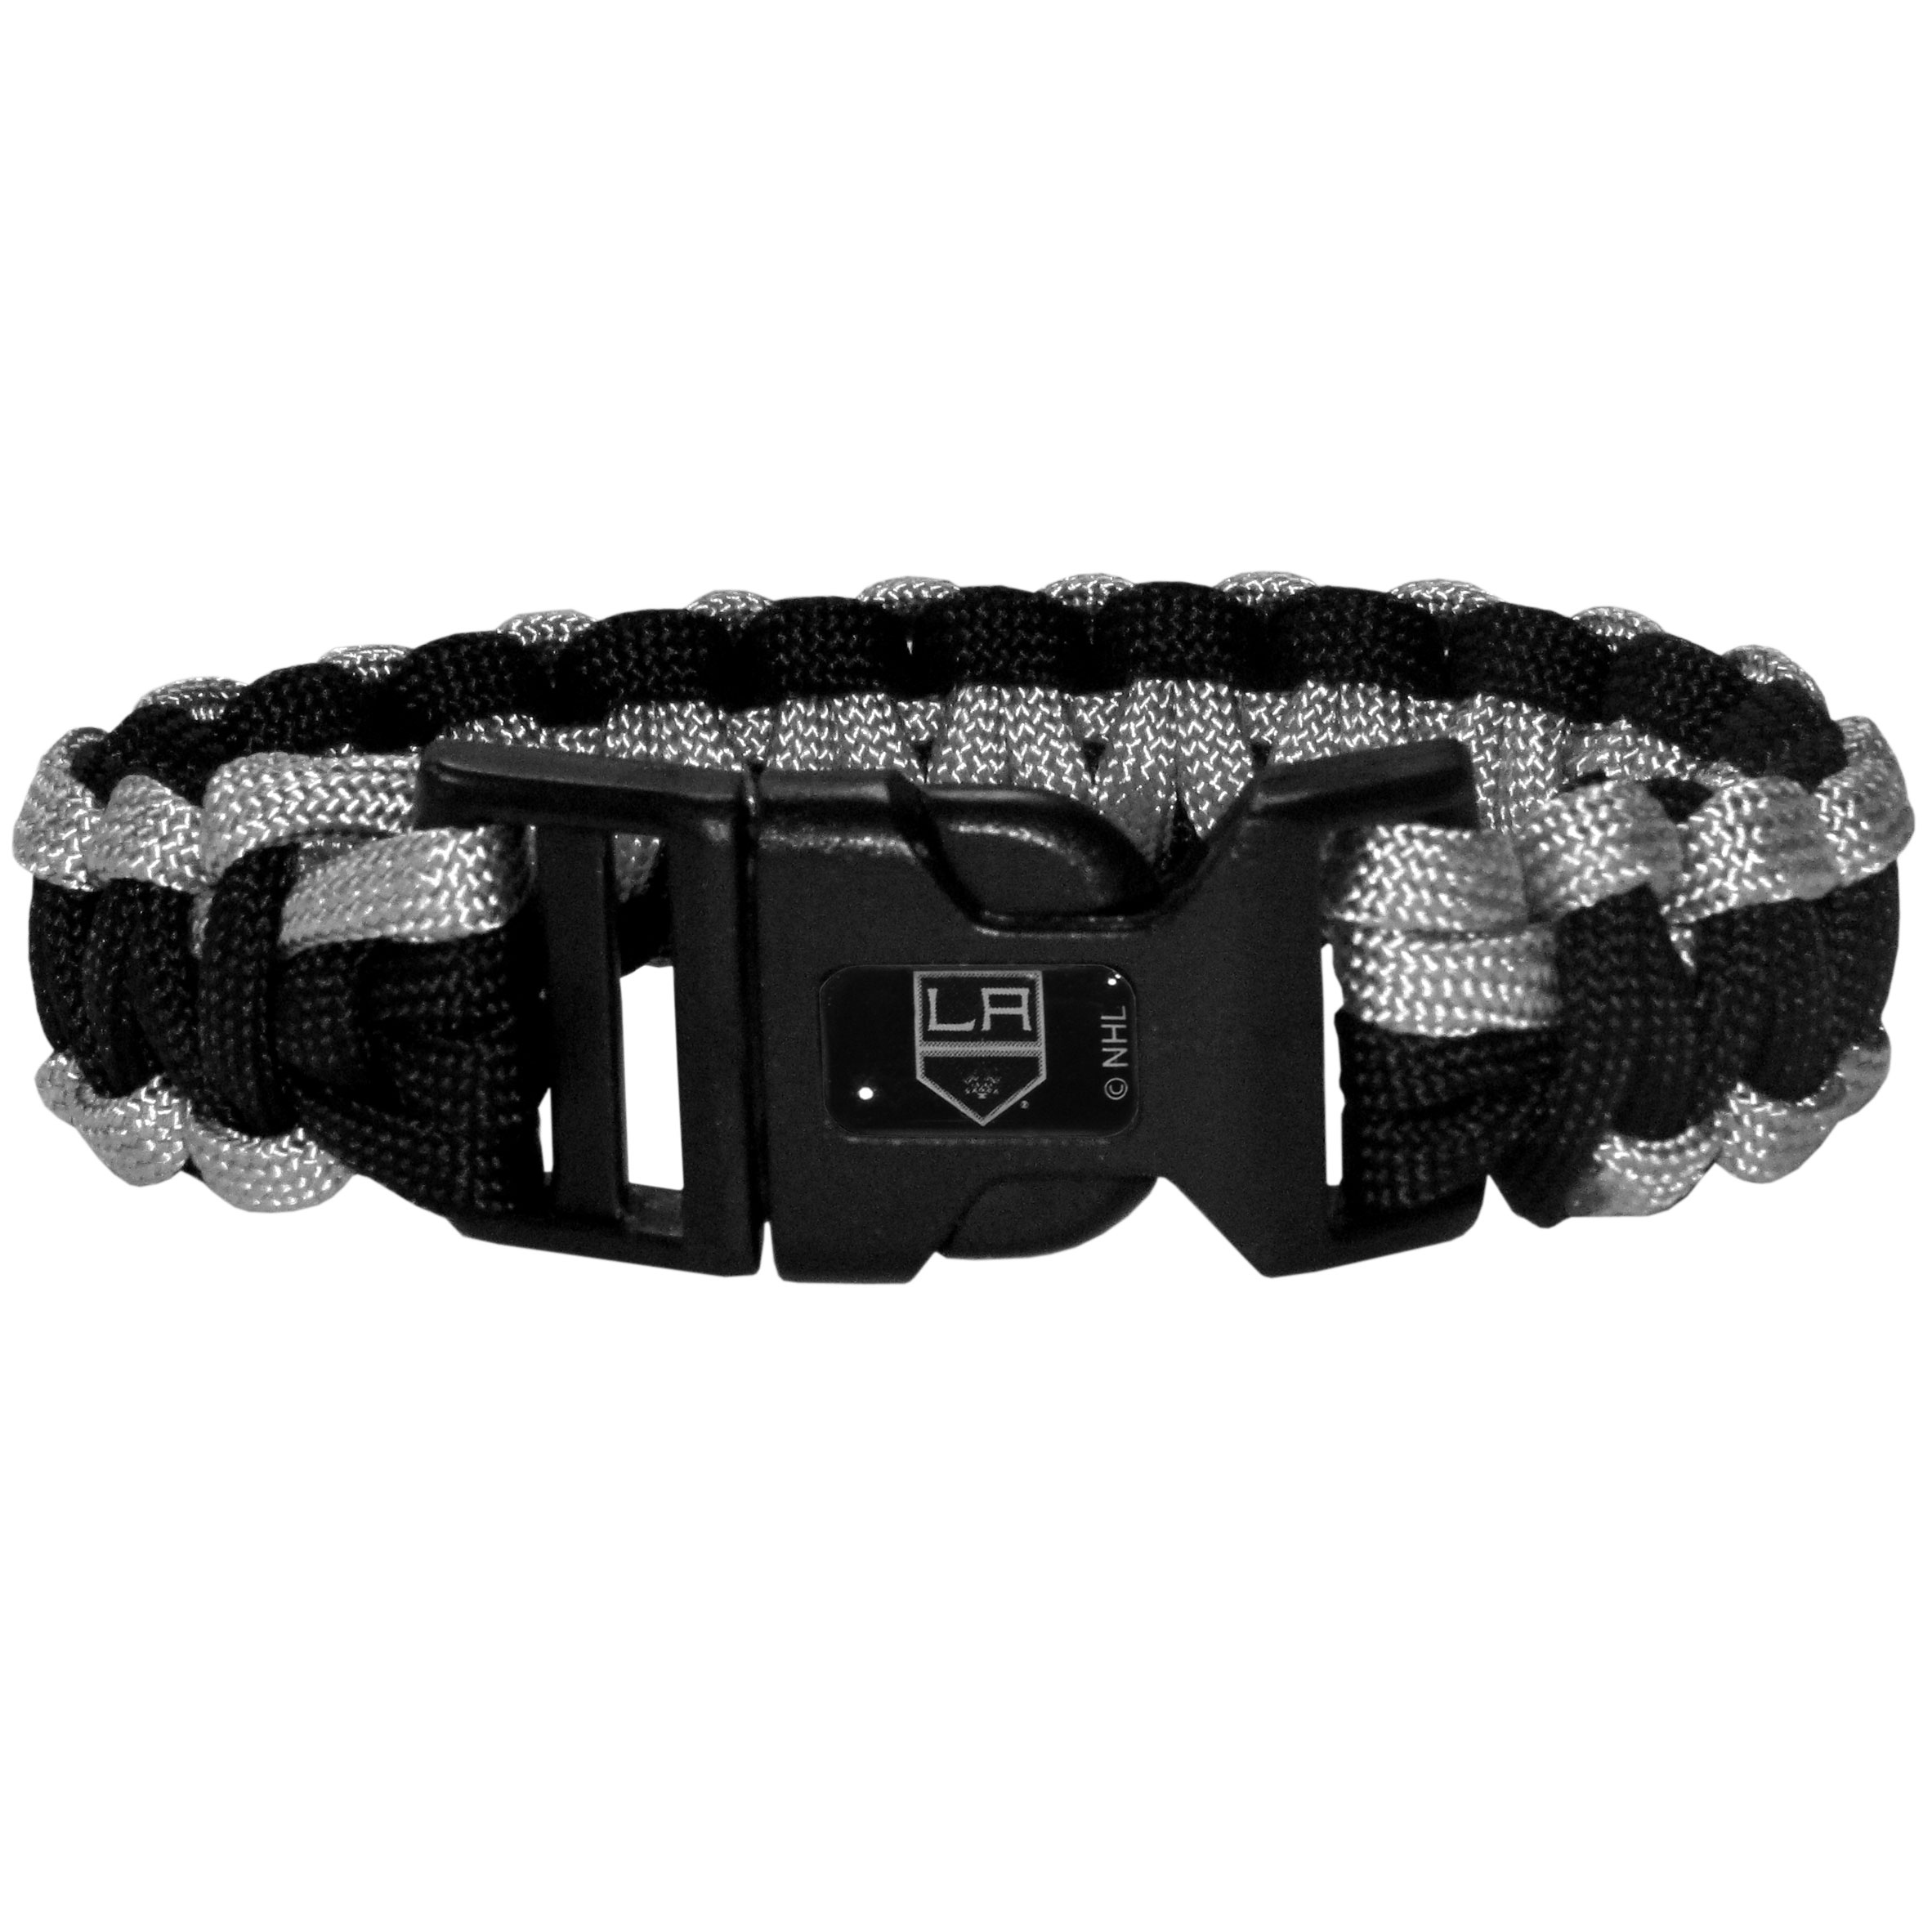 Los Angeles Kings® Survivor Bracelet - Our functional and fashionable Los Angeles Kings® survivor bracelets contain 2 individual 300lb test paracord rated cords that are each 5 feet long. The team colored cords can be pulled apart to be used in any number of emergencies and look great while worn. The bracelet features a team emblem on the clasp.